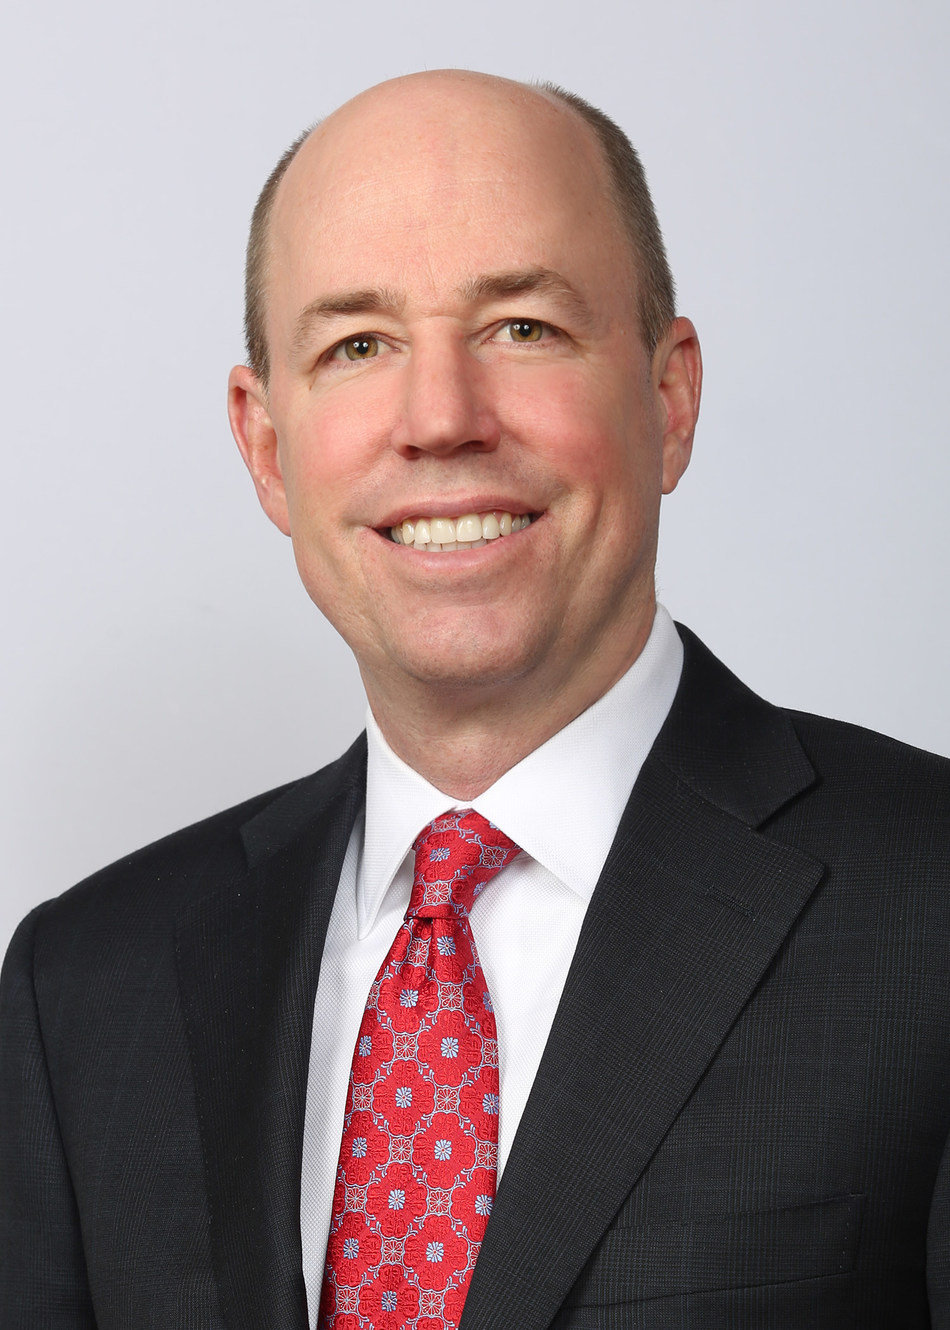 Timothy Wennes has been named President and CEO of Santander Bank, N.A.